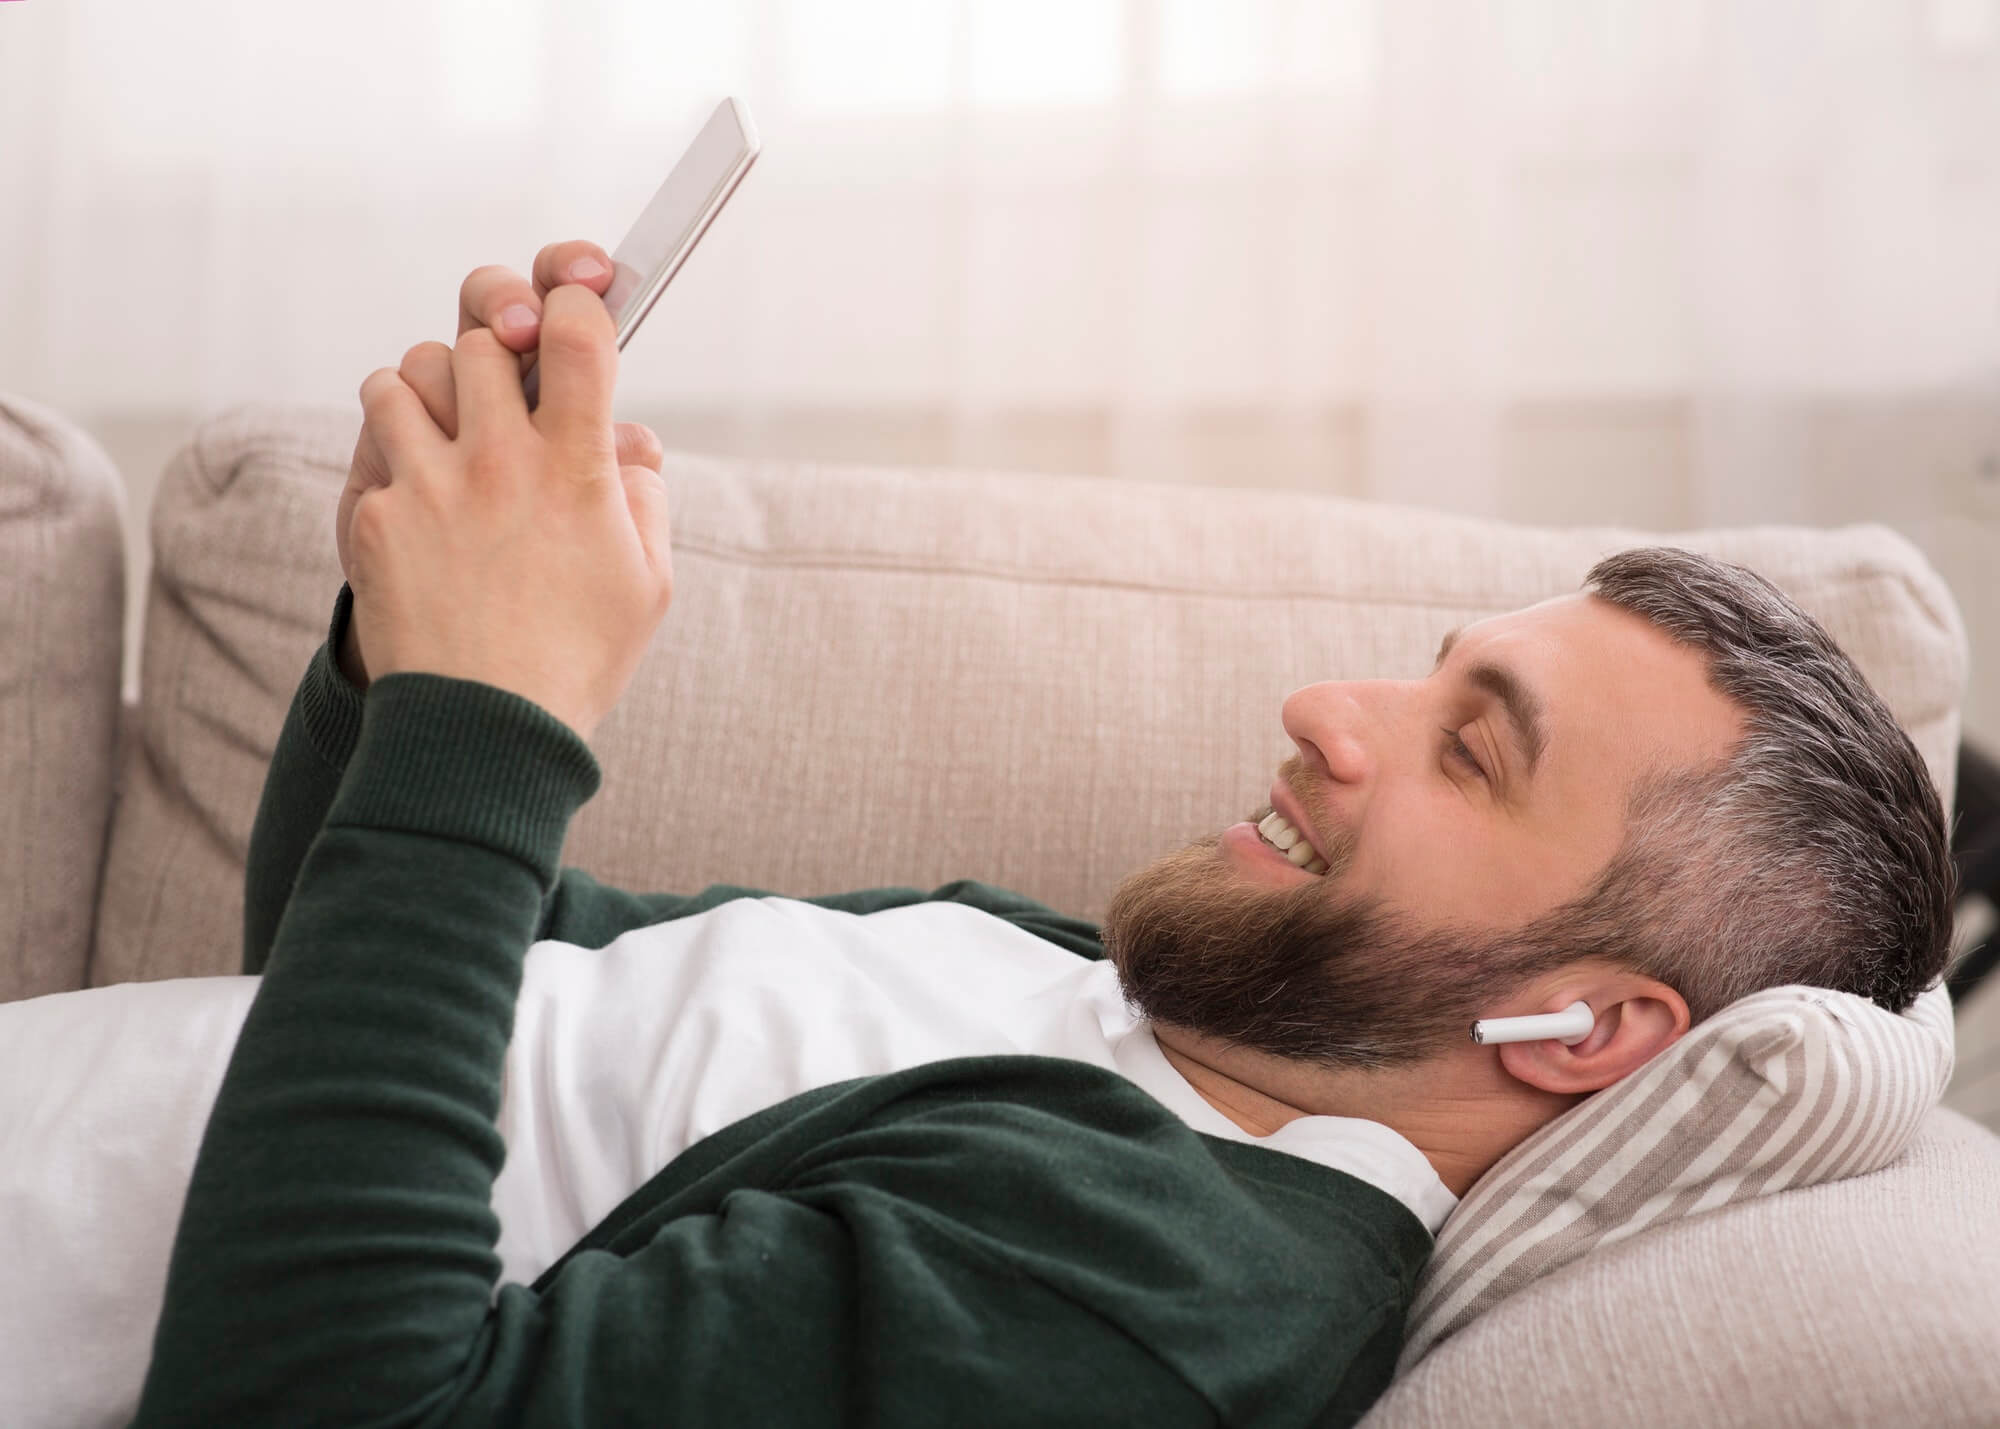 Cheerful man watching movies on digital tablet with wireless earphones